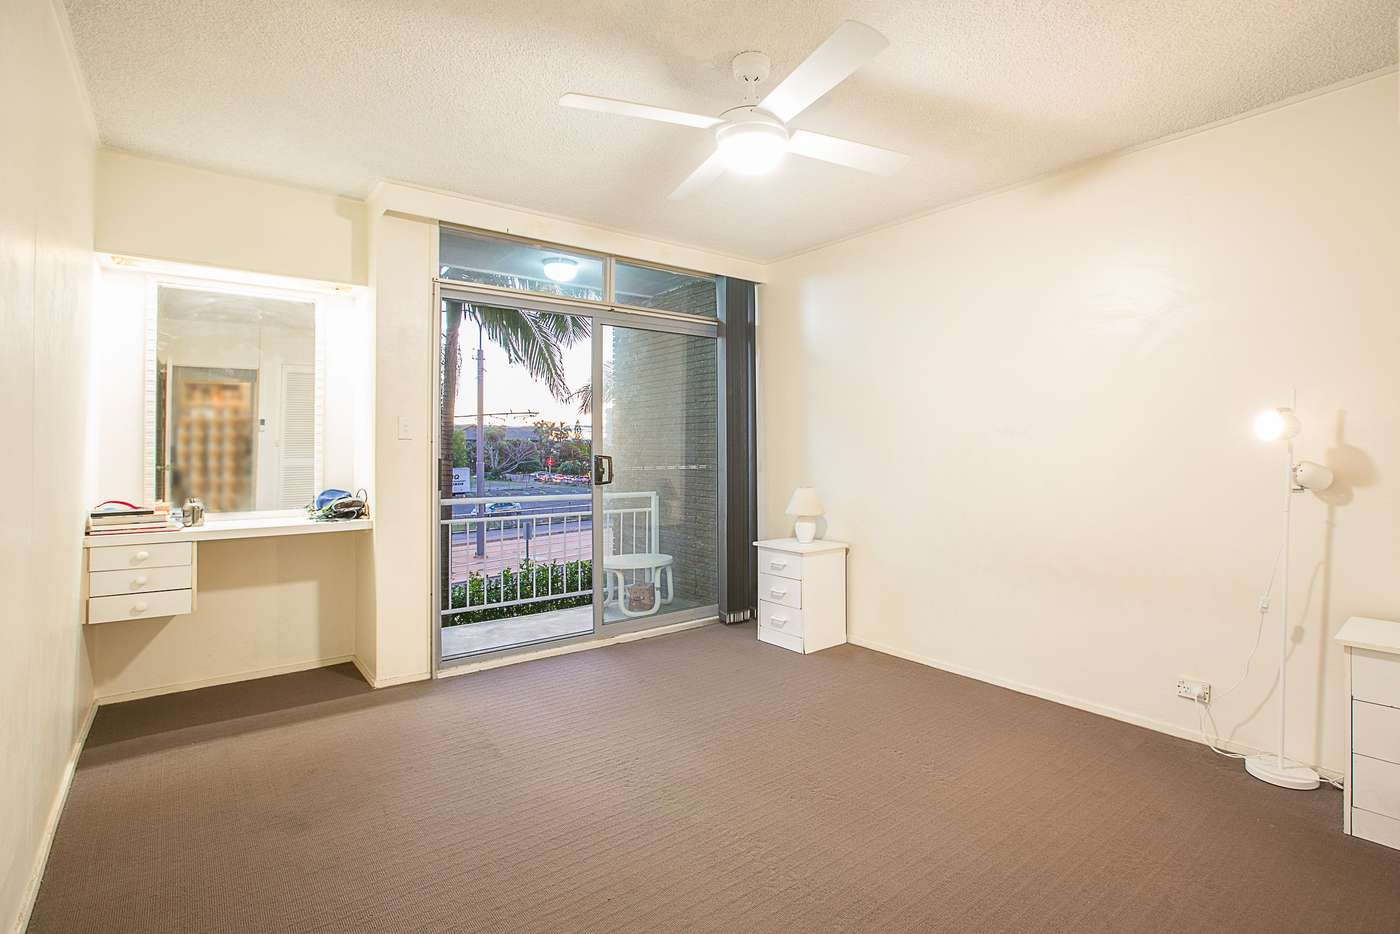 Sixth view of Homely unit listing, 1/120 the Esplanade, Surfers Paradise QLD 4217